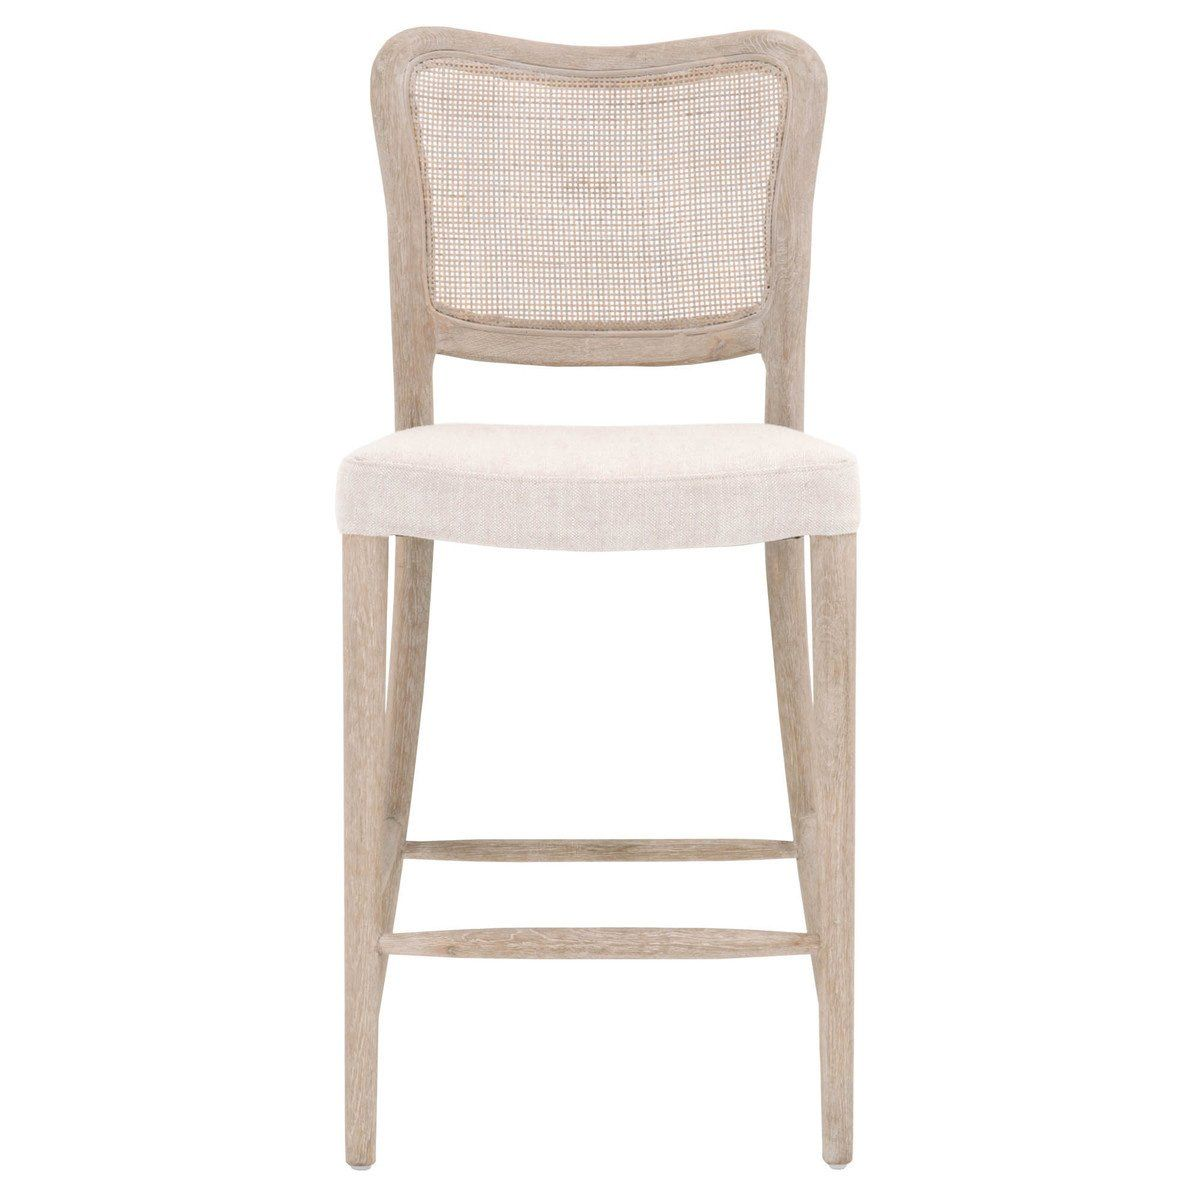 Cela Counter Stool In 2021 Counter Stools Wood Counter Stools Mid Century Bar Stools